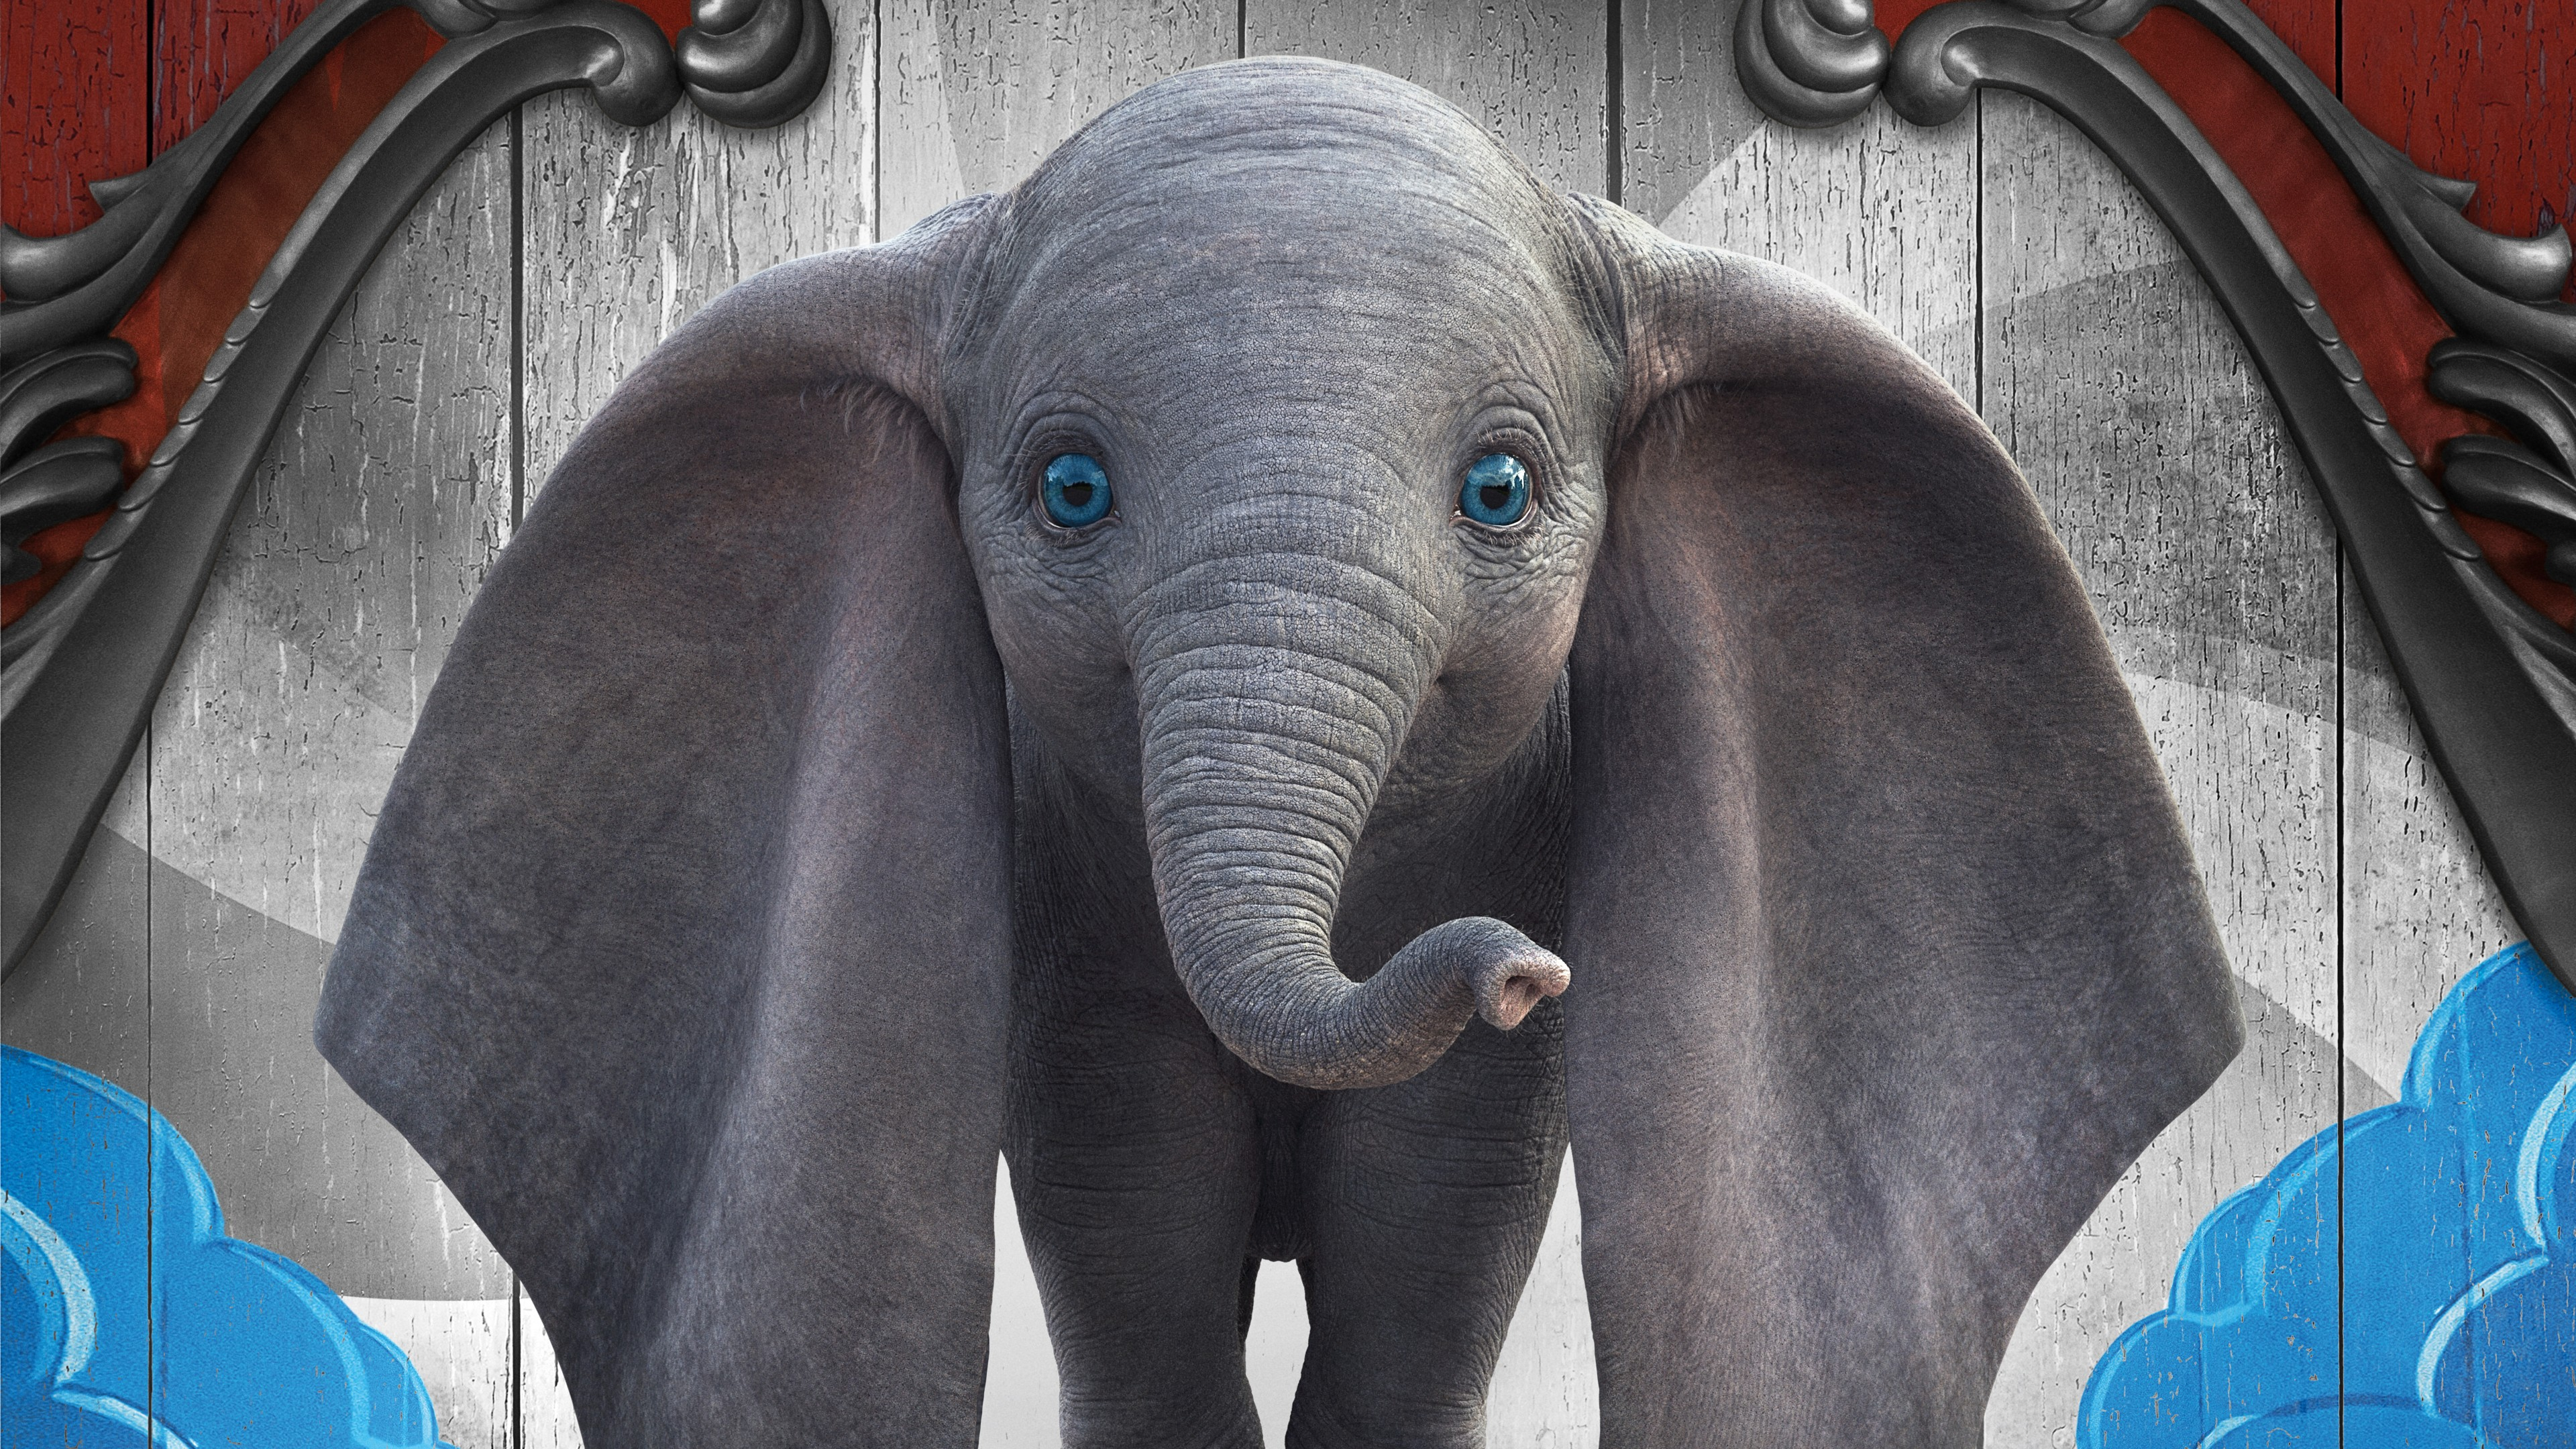 3d Live Wallpapers Download For Iphone Dumbo Elephant 2019 4k 8k Wallpapers Hd Wallpapers Id